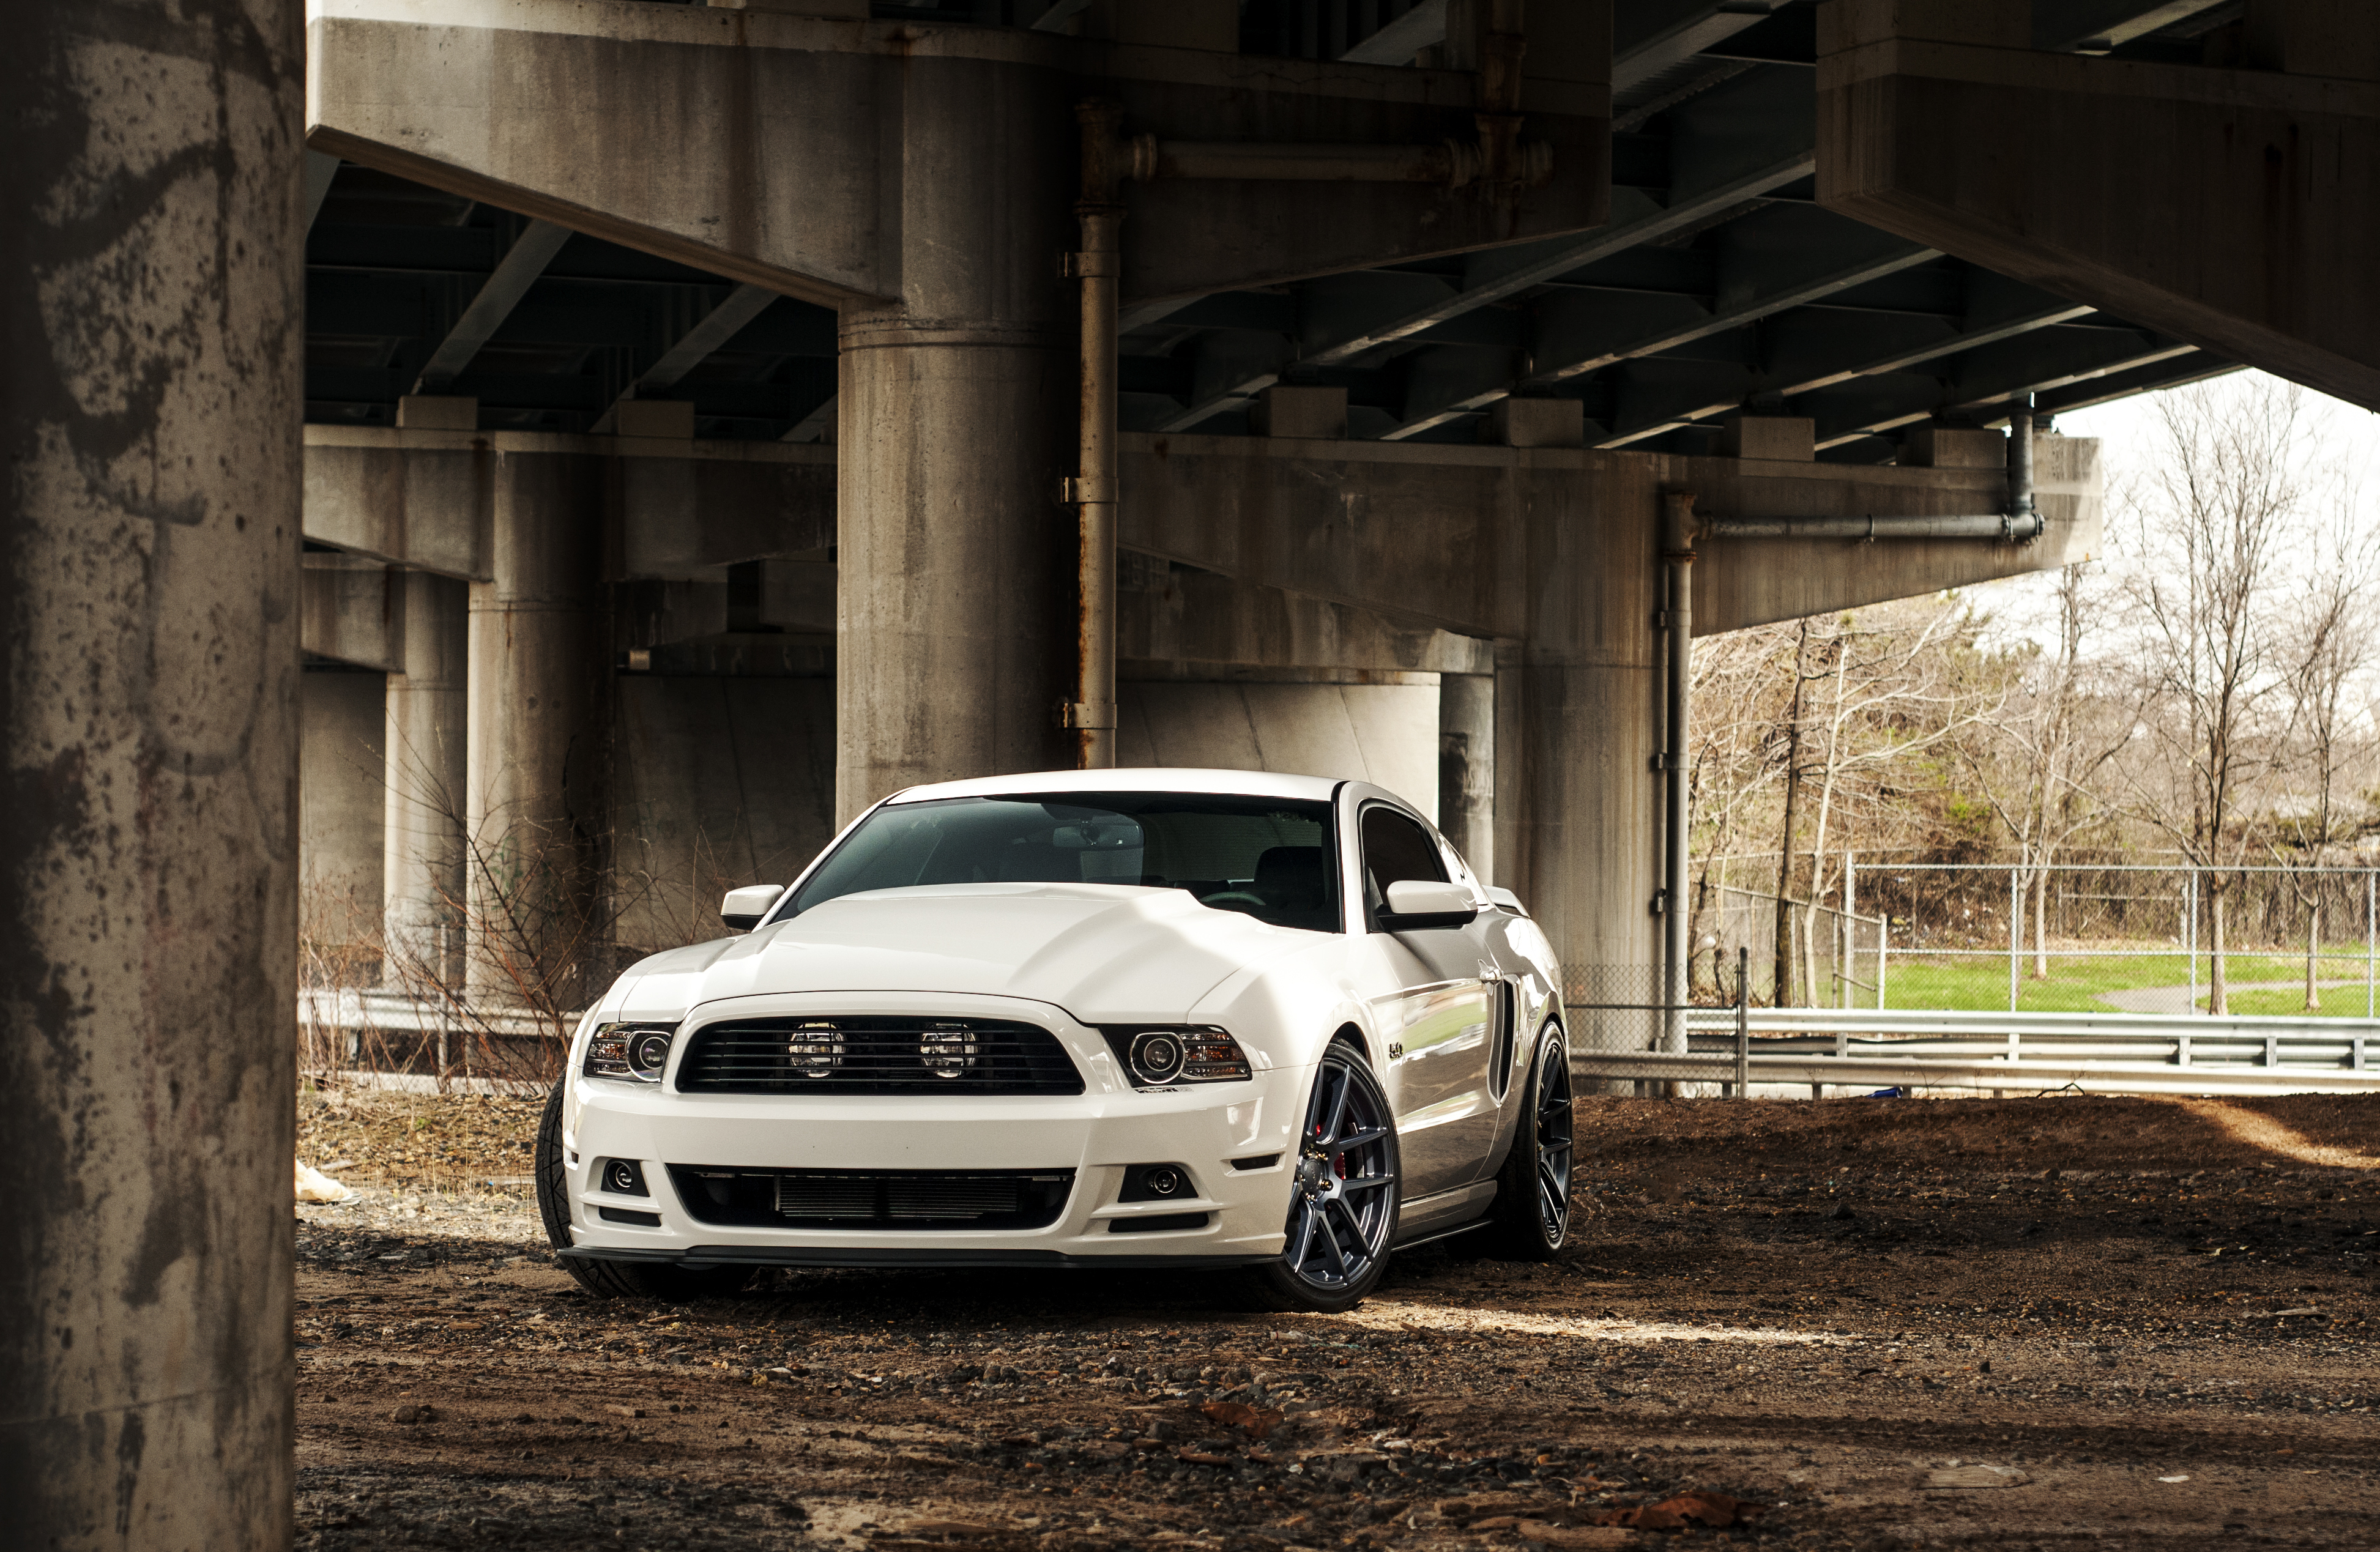 132 4K Ultra HD Ford Mustang Wallpapers